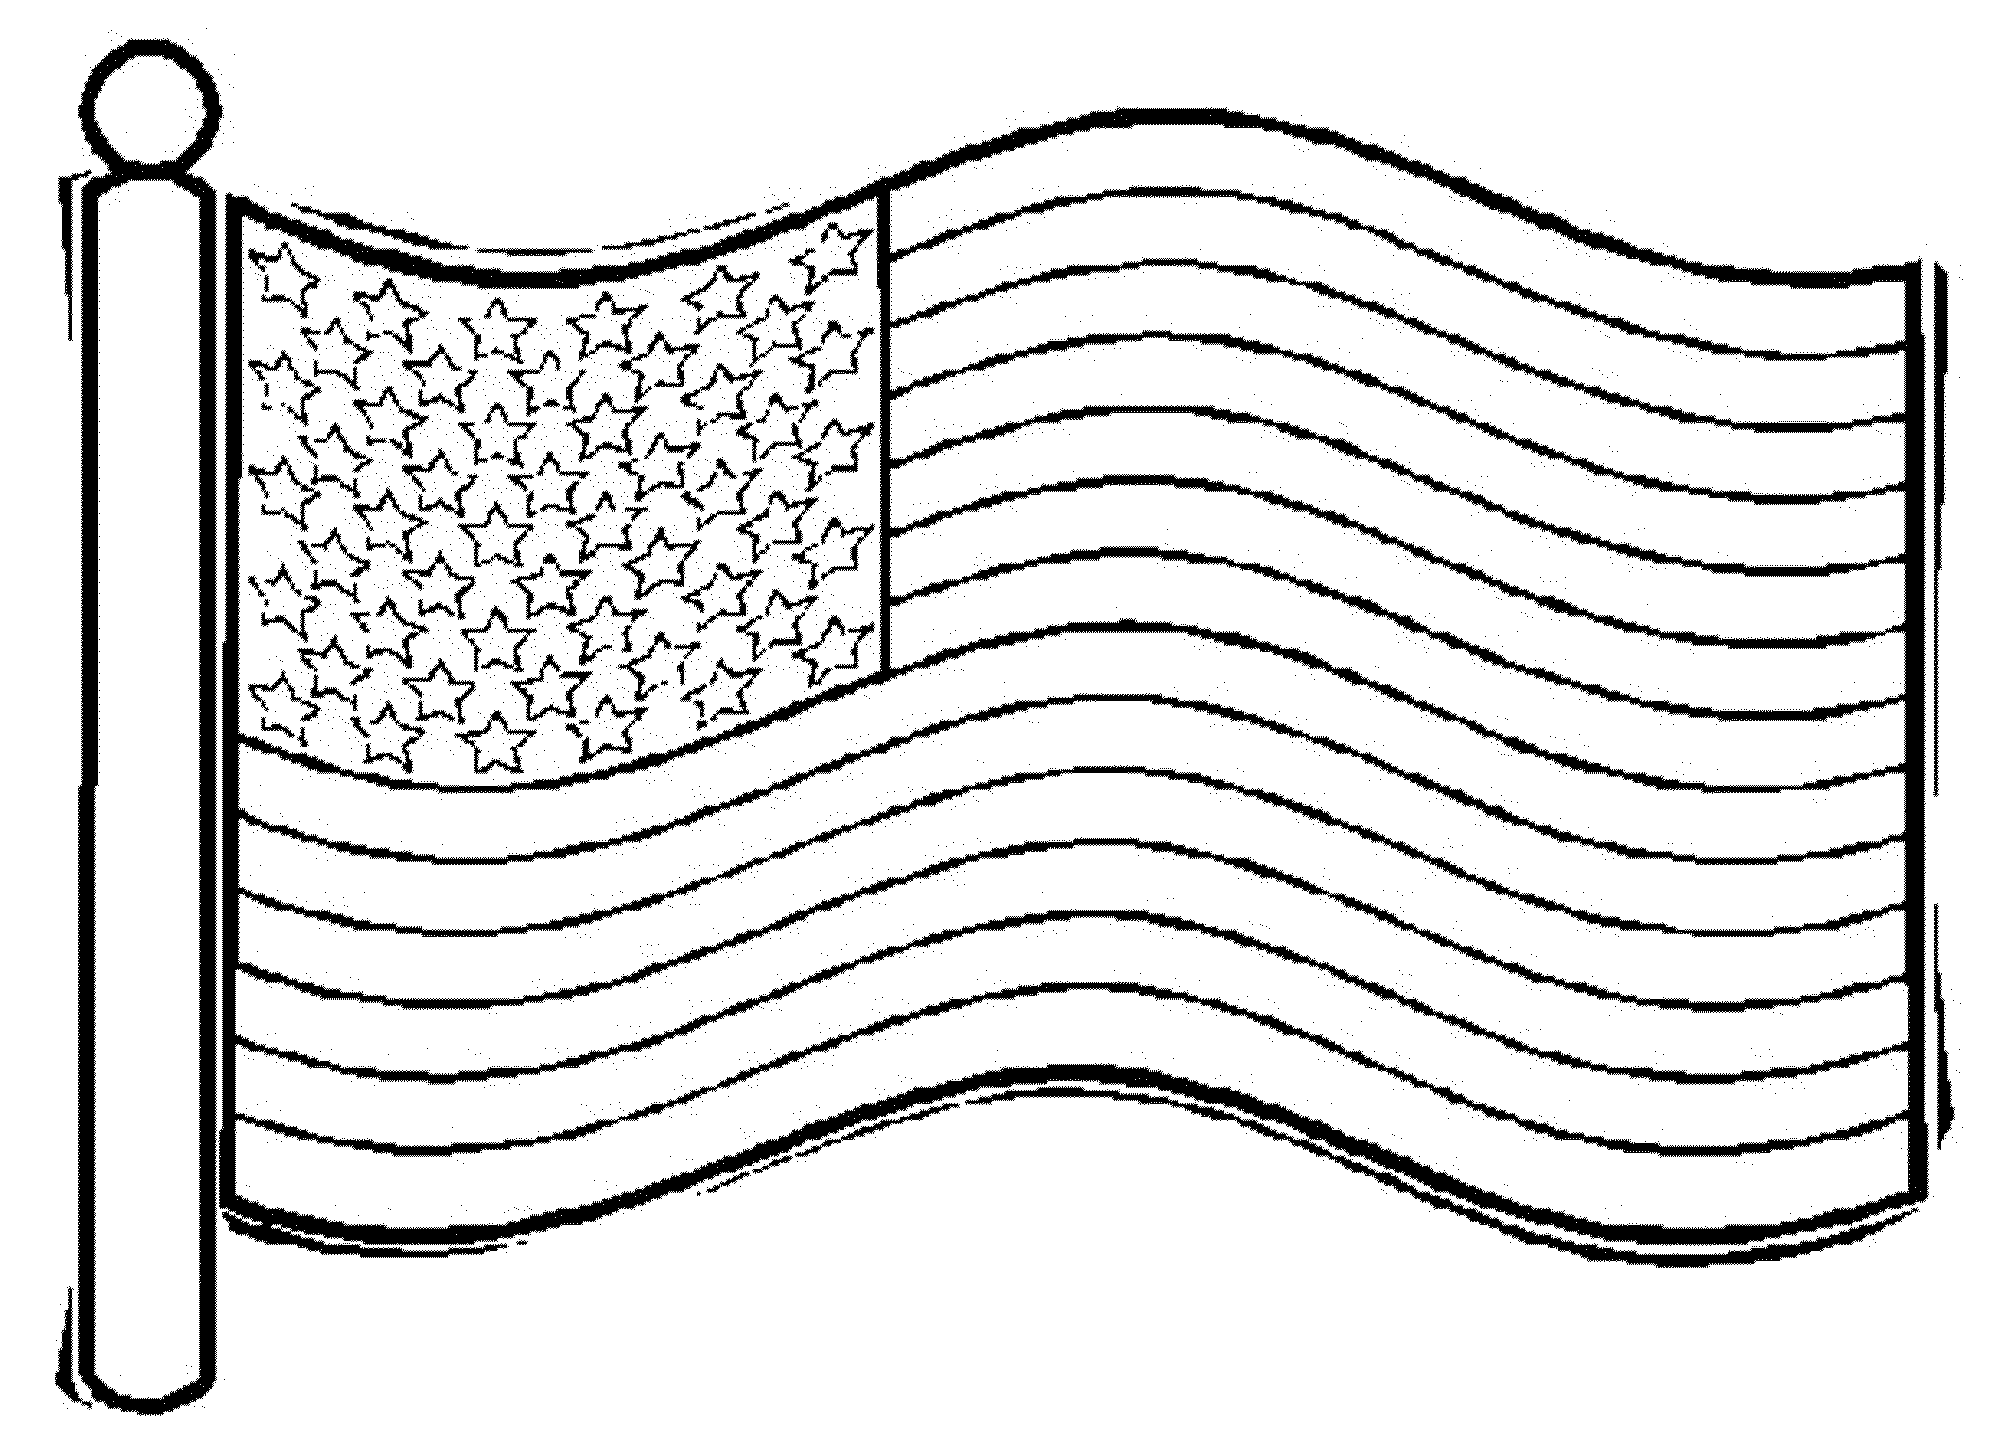 country flag coloring pages top 10 free printable country and world flags coloring flag pages coloring country